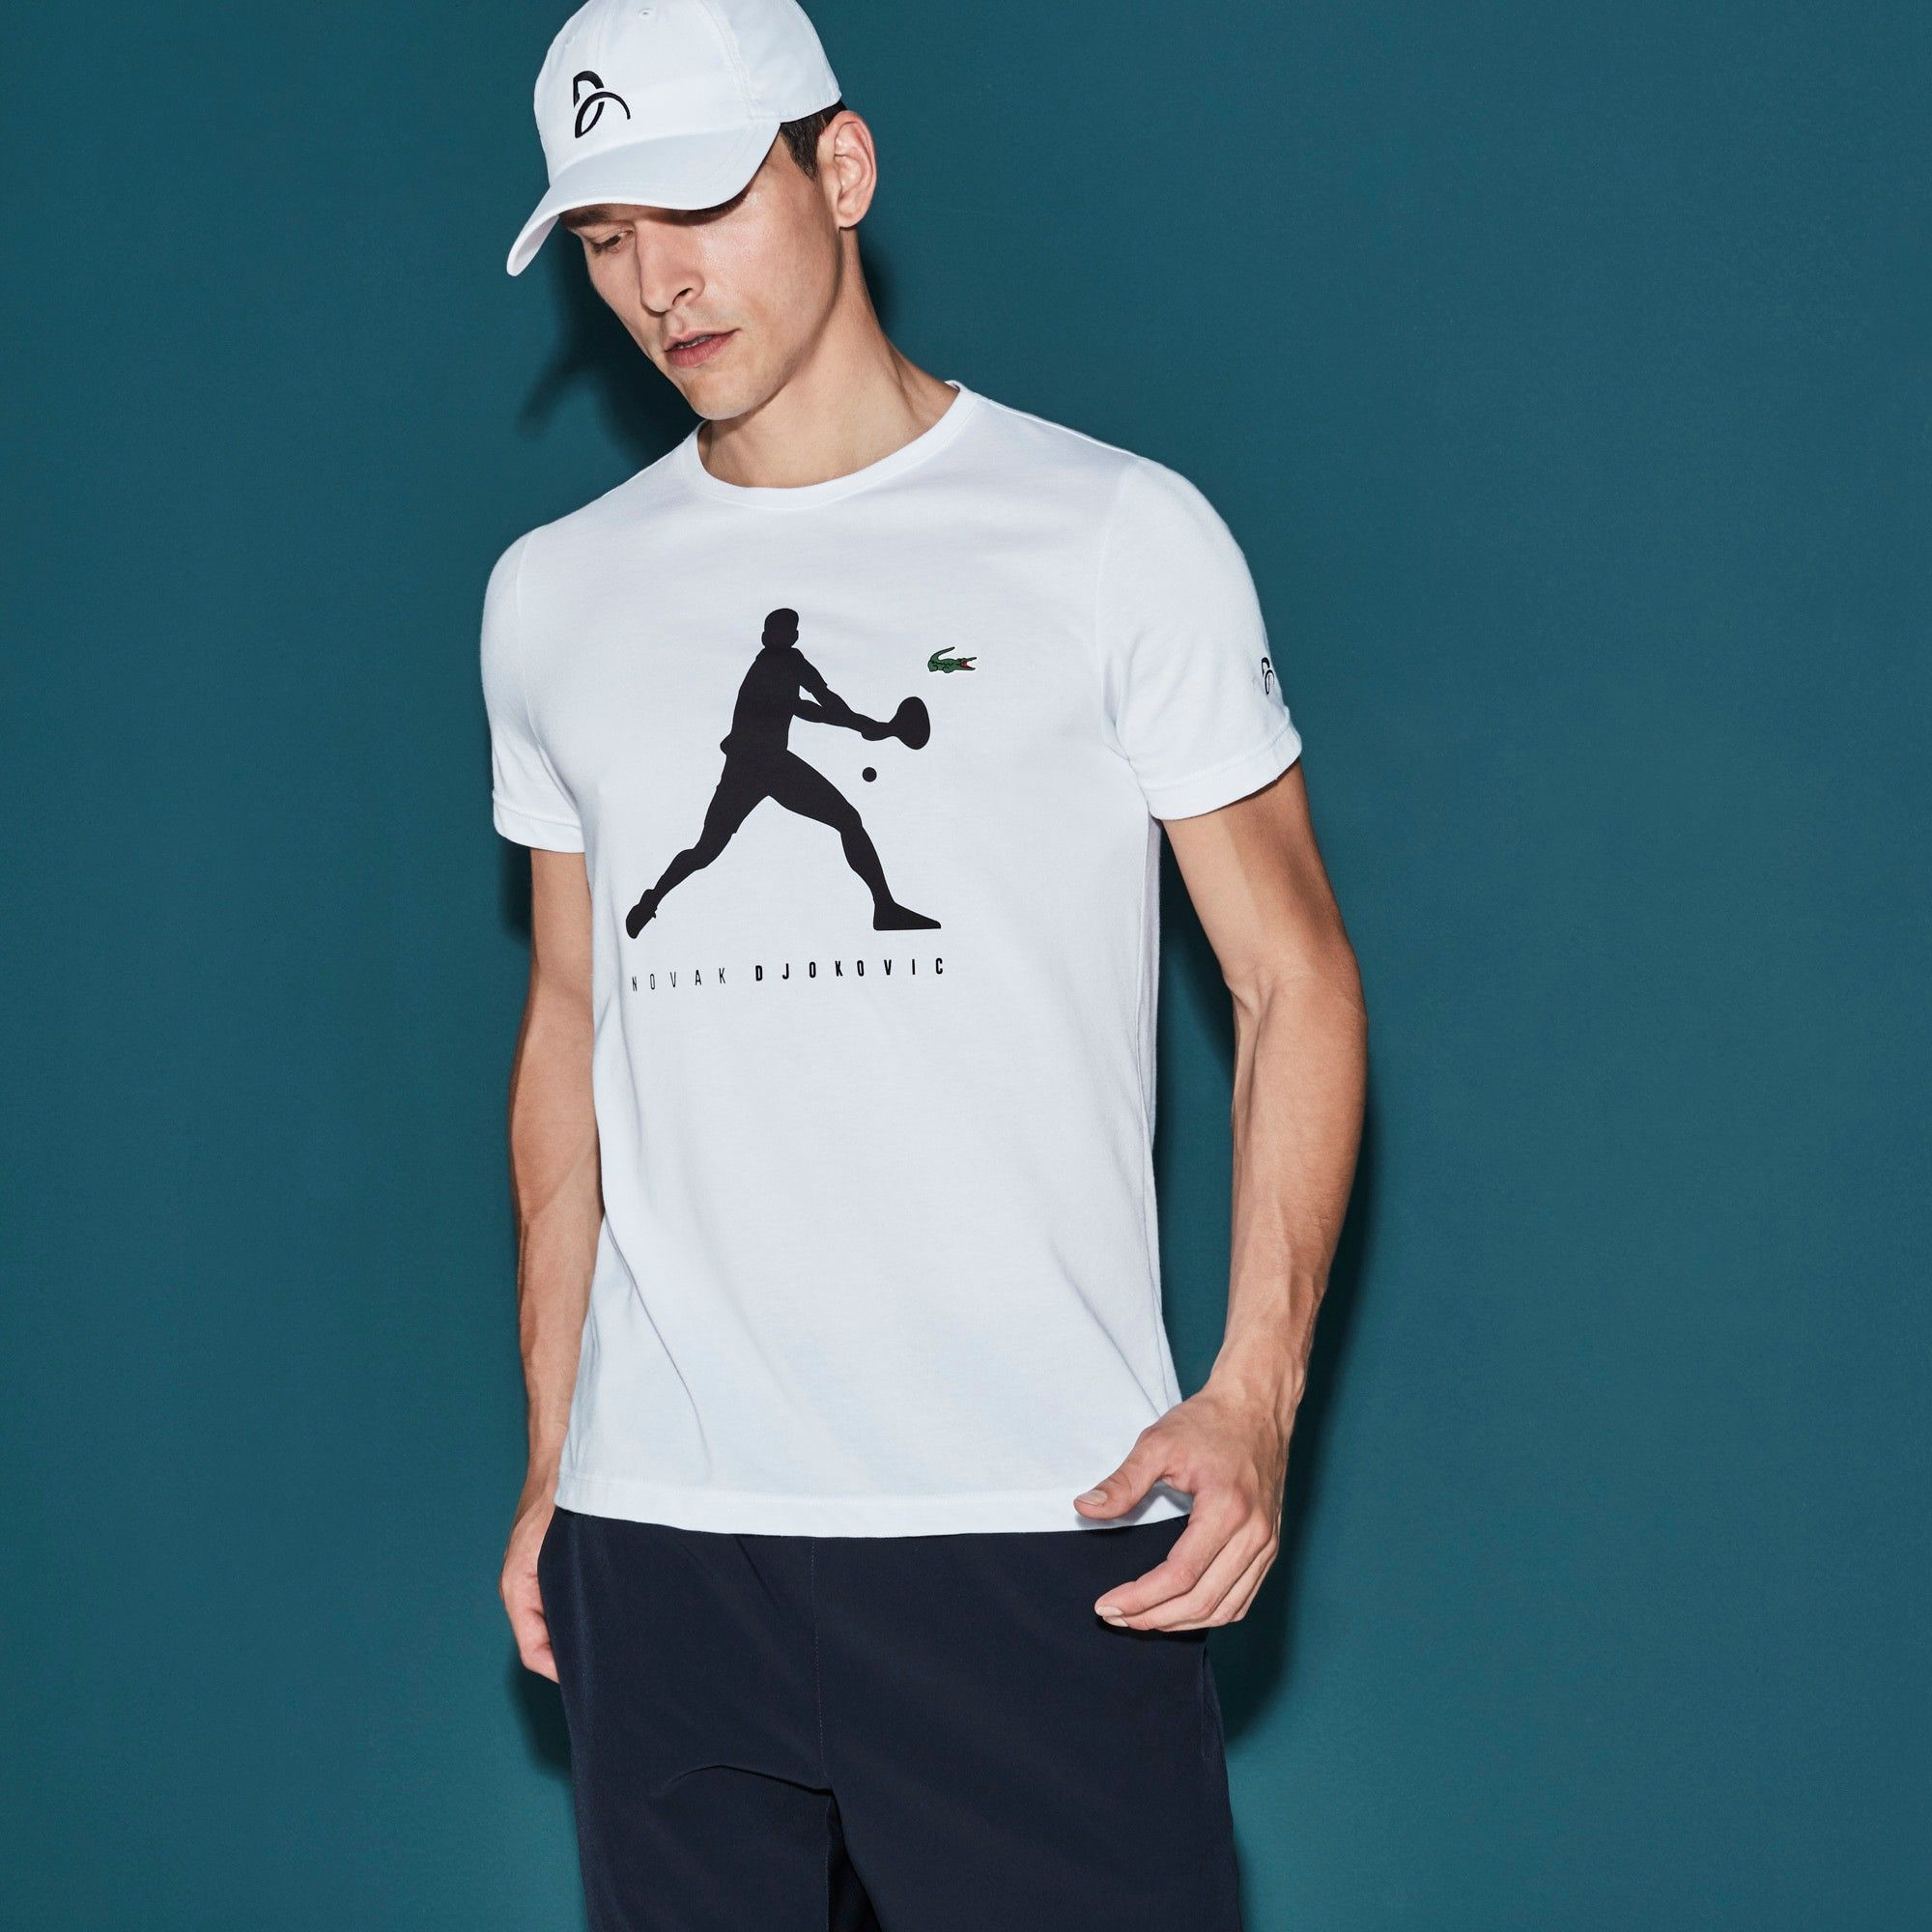 Lacoste Men S Sport Tennis Tech Jersey T Shirt Novak Djokovic Supporter Collection White Modesens Lacoste Men Lacoste Lacoste Sport